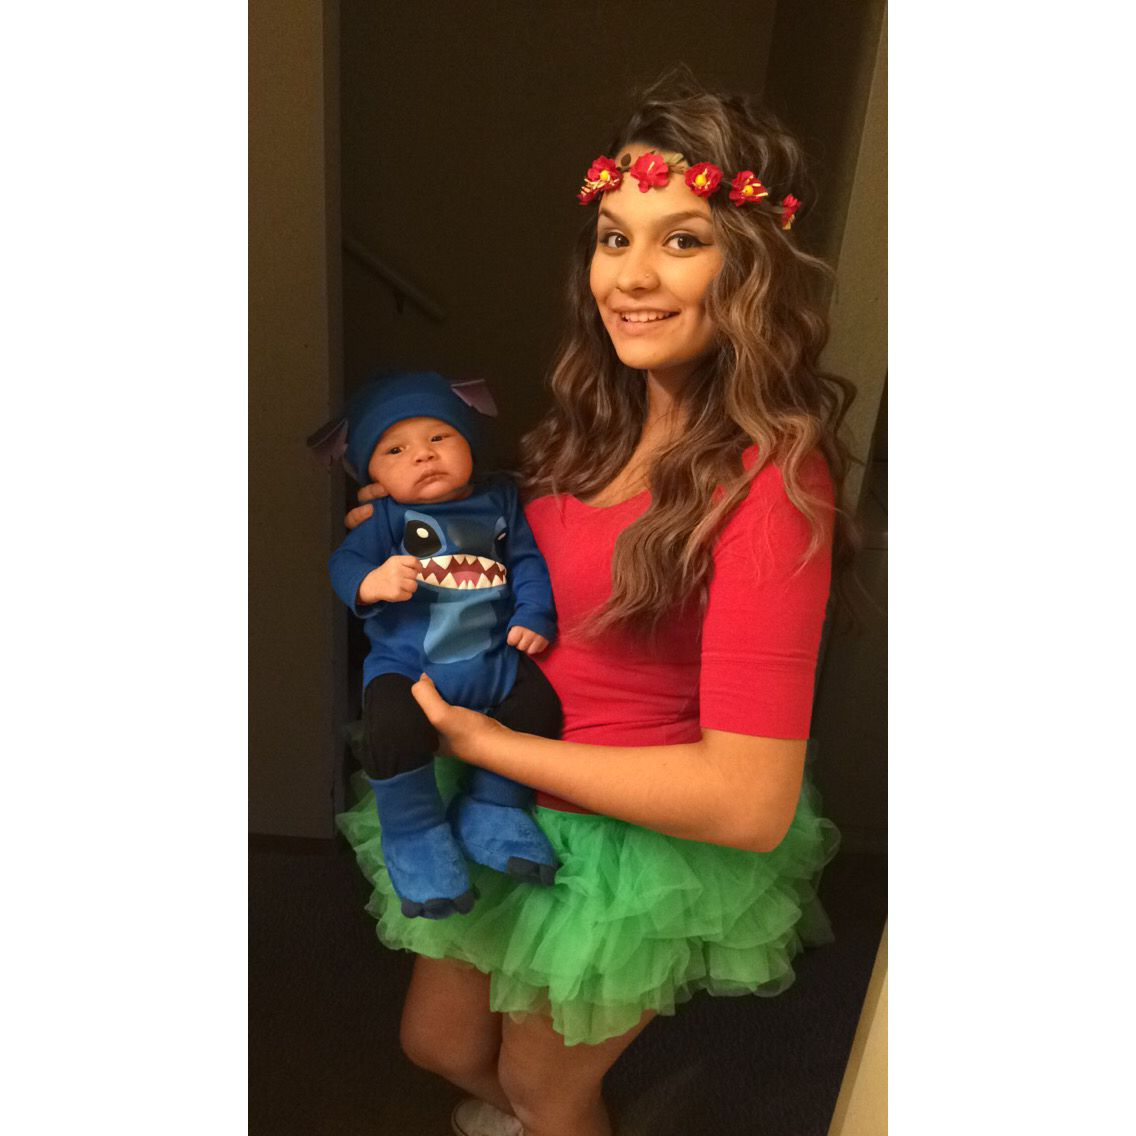 Baby And Mommys Costumes Pregnant Halloween Costumes Daughter Halloween Costumes Mother Daughter Halloween Costumes